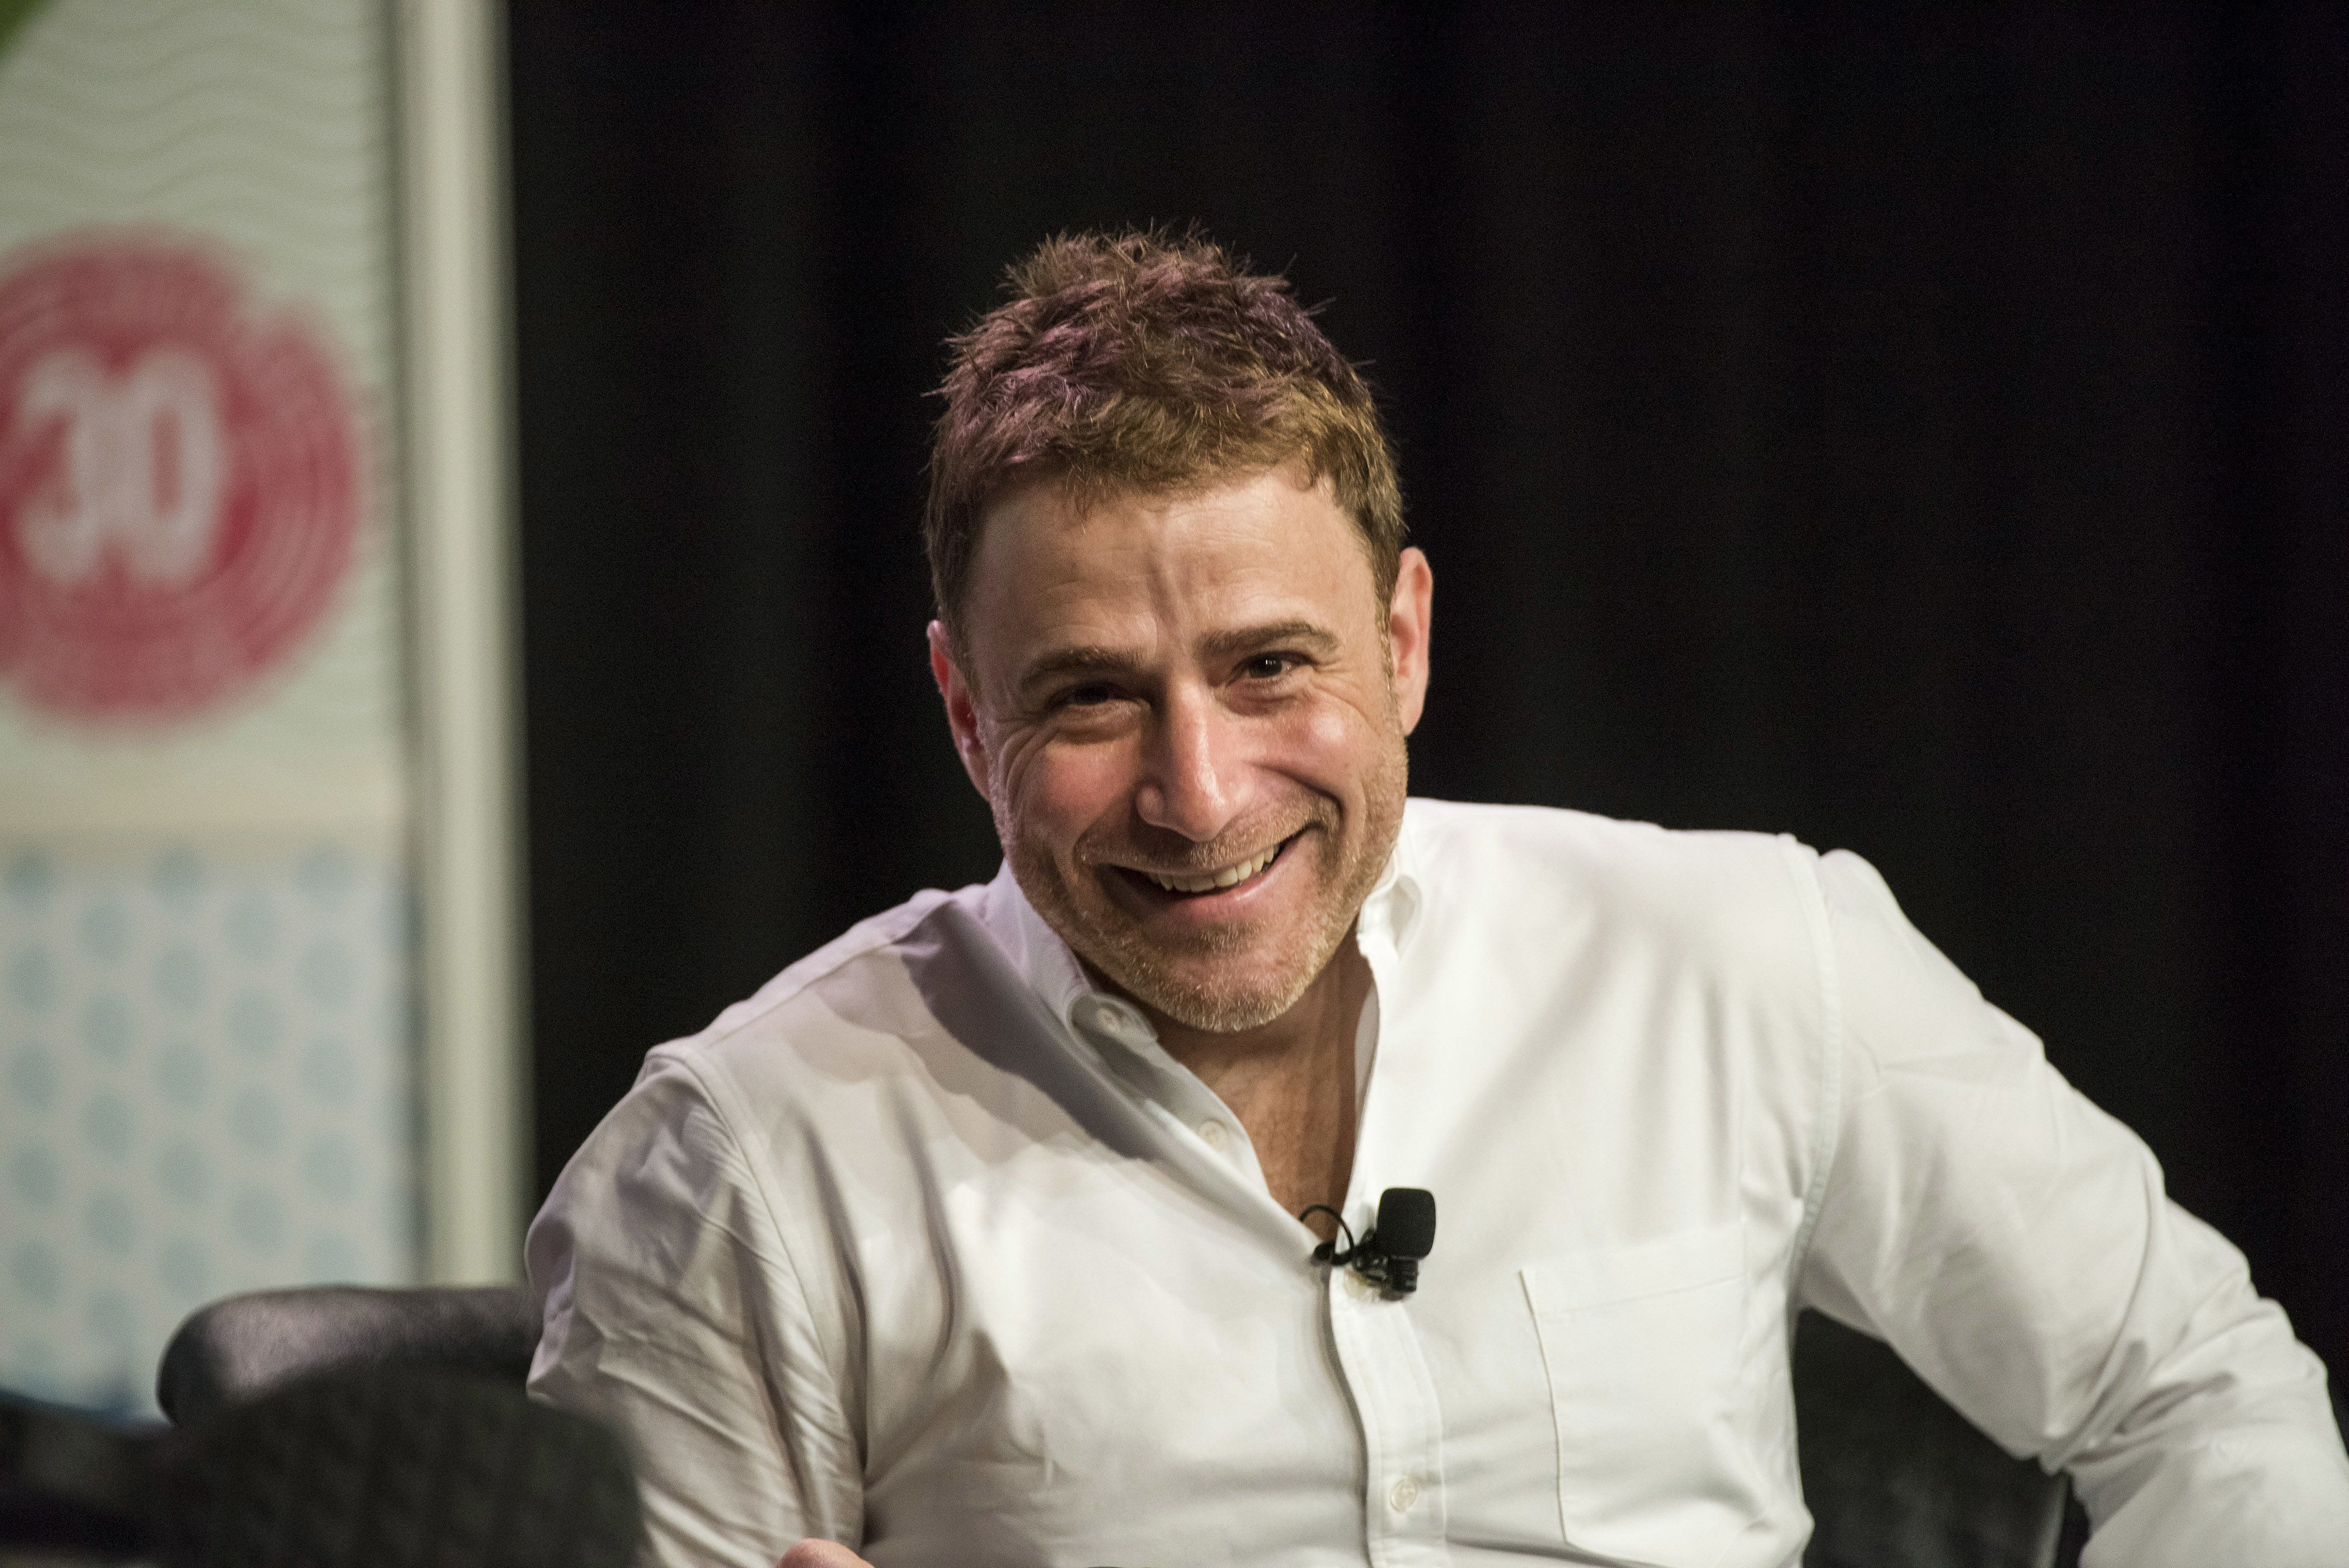 Stewart Butterfield, co-founder and chief executive officer of Slack Technologies Inc., smiles during the South By Southwest (SXSW) Interactive Festival at the Austin Convention Center in Austin, Texas, U.S., on Tuesday, March 15, 2016. The SXSW Interactive Festival features presentations and panels from the brightest minds in emerging technology, scores of networking events hosted by industry leaders and a lineup of special programs showcasing new websites, video games, and startup ideas. Photographer: David Paul Morris/Bloomberg via Getty Images